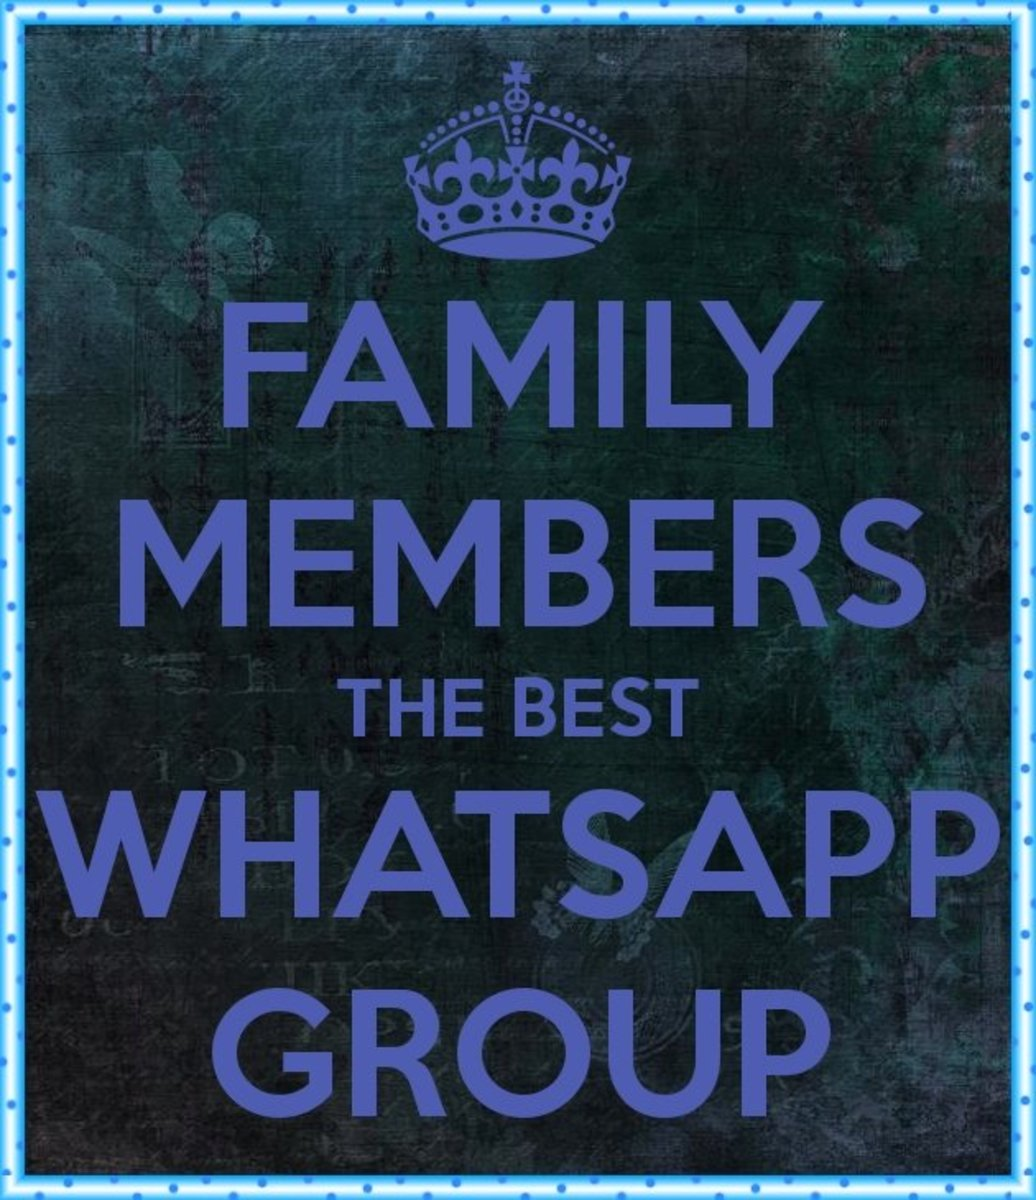 Funny Whatsapp group name ideas